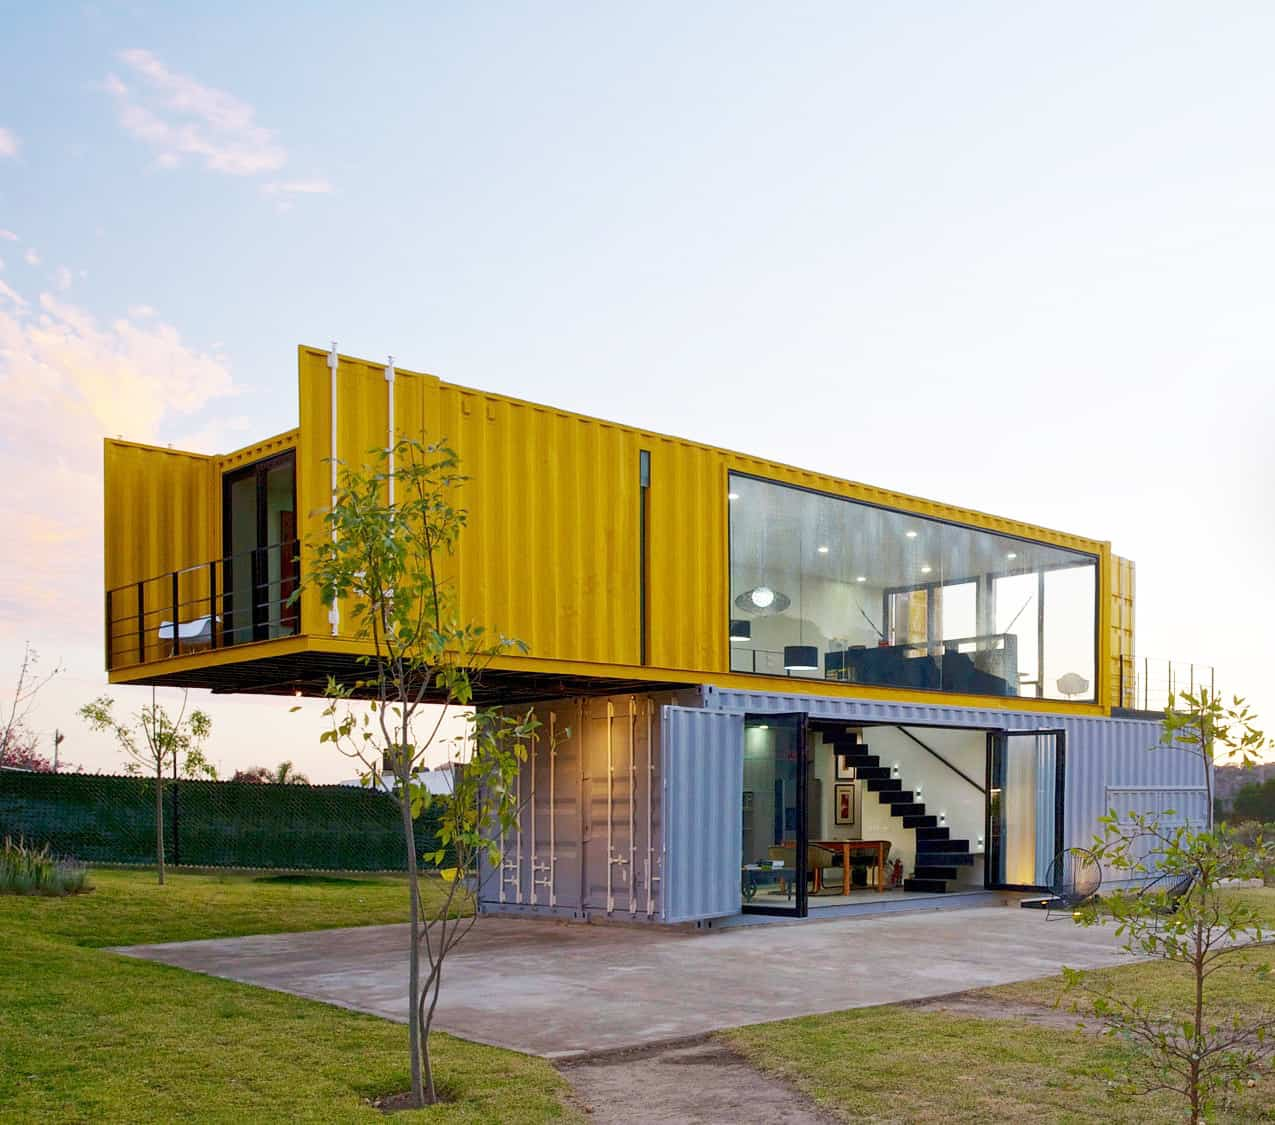 Best Kitchen Gallery: 4 Shipping Containers Prefab Plus 1 For Guests of Steel Container Homes  on rachelxblog.com